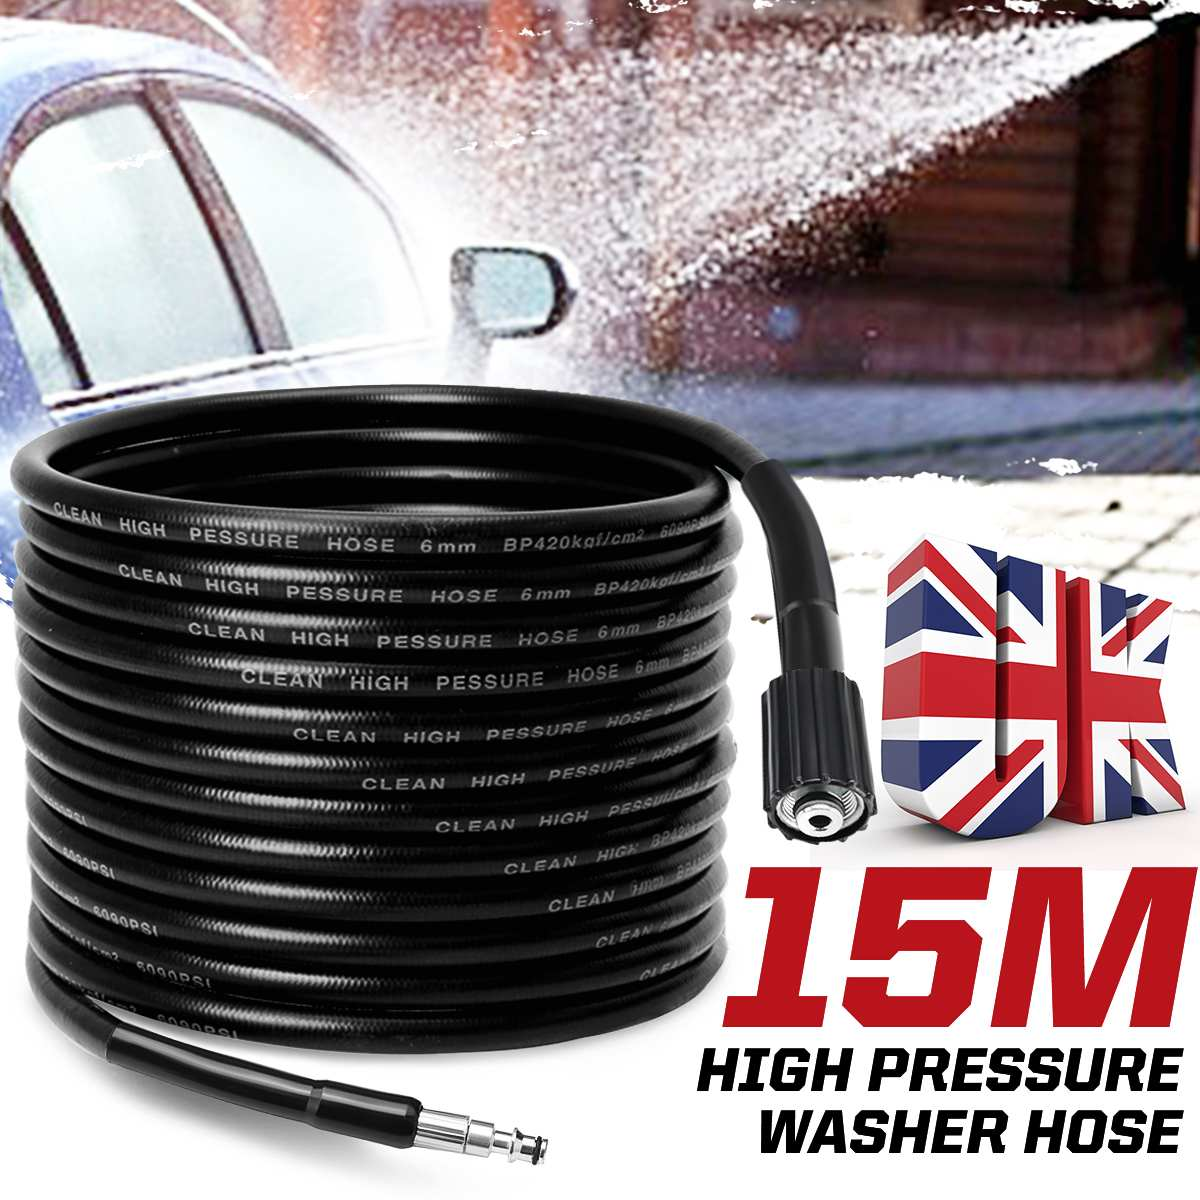 15 meters High Pressure Washer Hose Pipe Cord Car Washer Water Cleaning Extension Hose Water Hose for Lavor Vax Pressure Cleaner